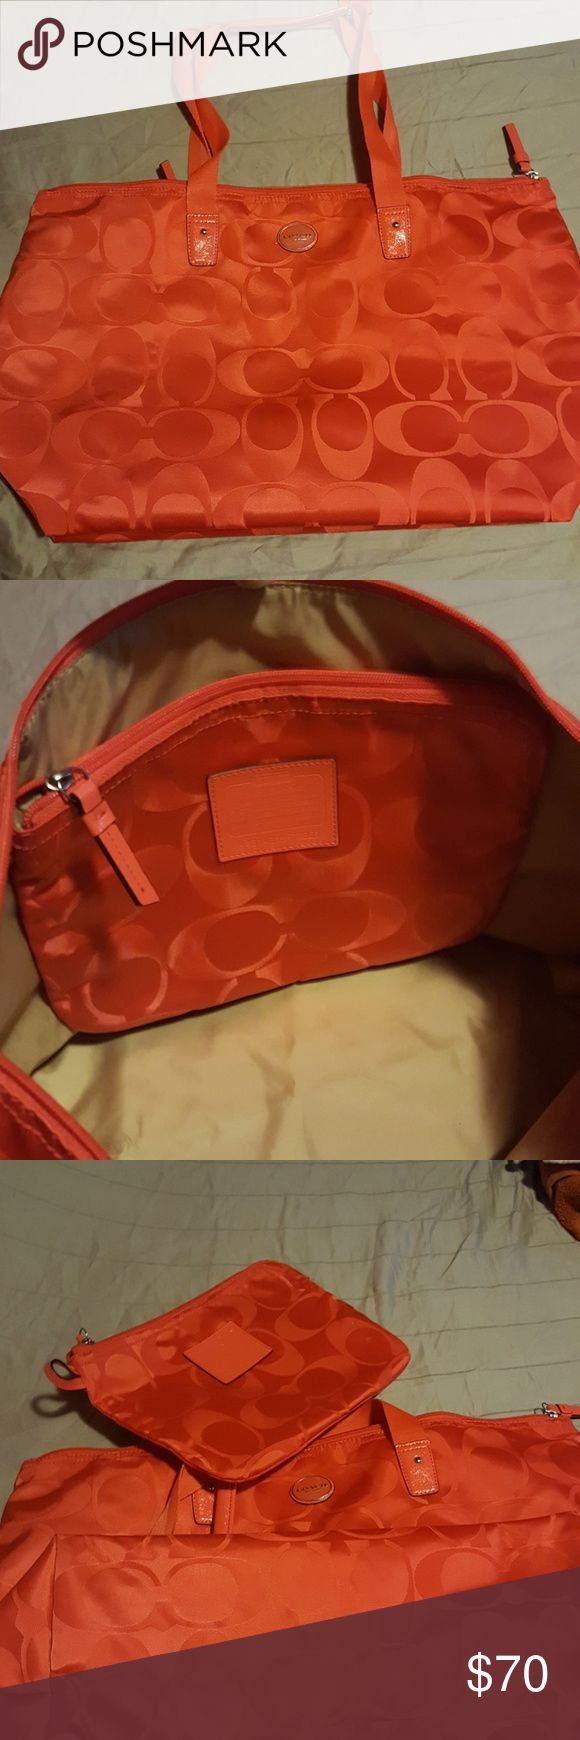 Coach shoulder bag and makeup bag in one Orangeish red lol can't really tell maybe burnt orange shoulder and small bag inside no stains or ware or tare I used it once Coach Bags Shoulder Bags